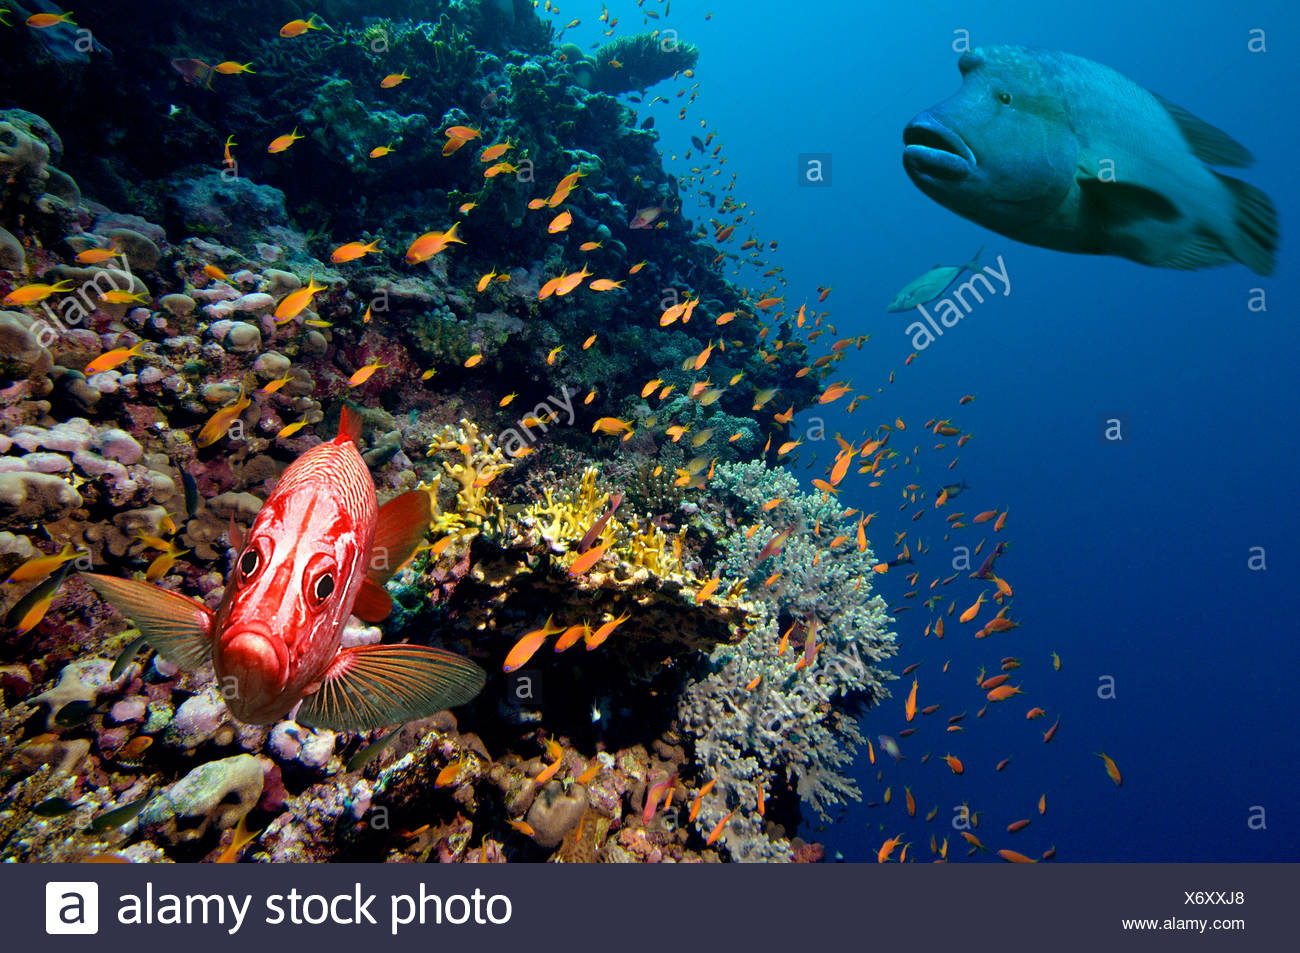 Middle East Egypt Red Sea, Basslets Anthiinae Digital Composite> Napoleon and Squirrelfish - Stock Image